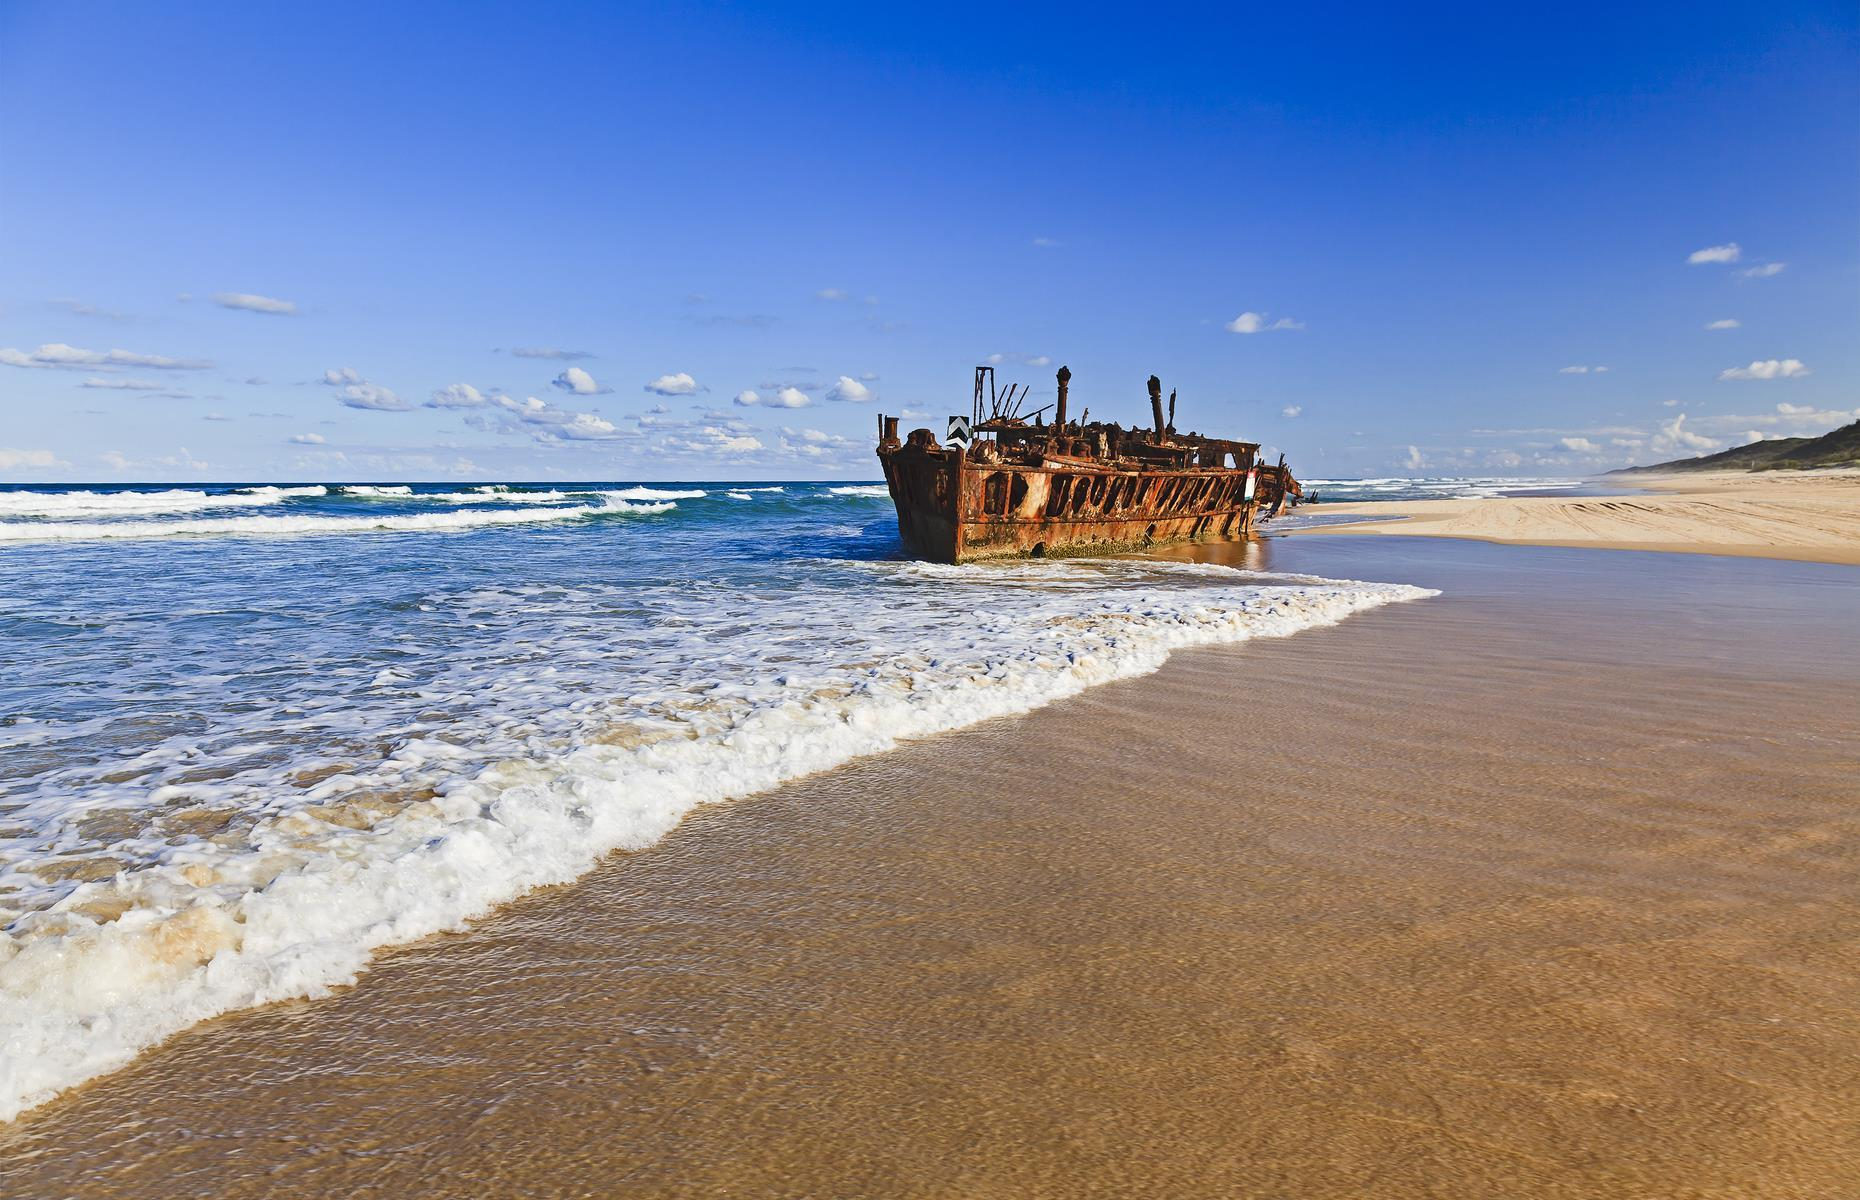 Slide 18 of 33: Australia's Fraser Island is no stranger to shipwrecks – 23 wrecks were recorded in its waters between 1856 and 1935 when SS Maheno crashed ashore. The mighty steamship, which was built in 1905, was one of the first turbine-driven steamers. It plied a regular route between Sydney and Auckland before being used as a hospital ship during the First World War. It was decommissioned in 1935 and was being towed to Japanese shipwreckers when a cyclone snapped the tow chain and left the vessel drifting.